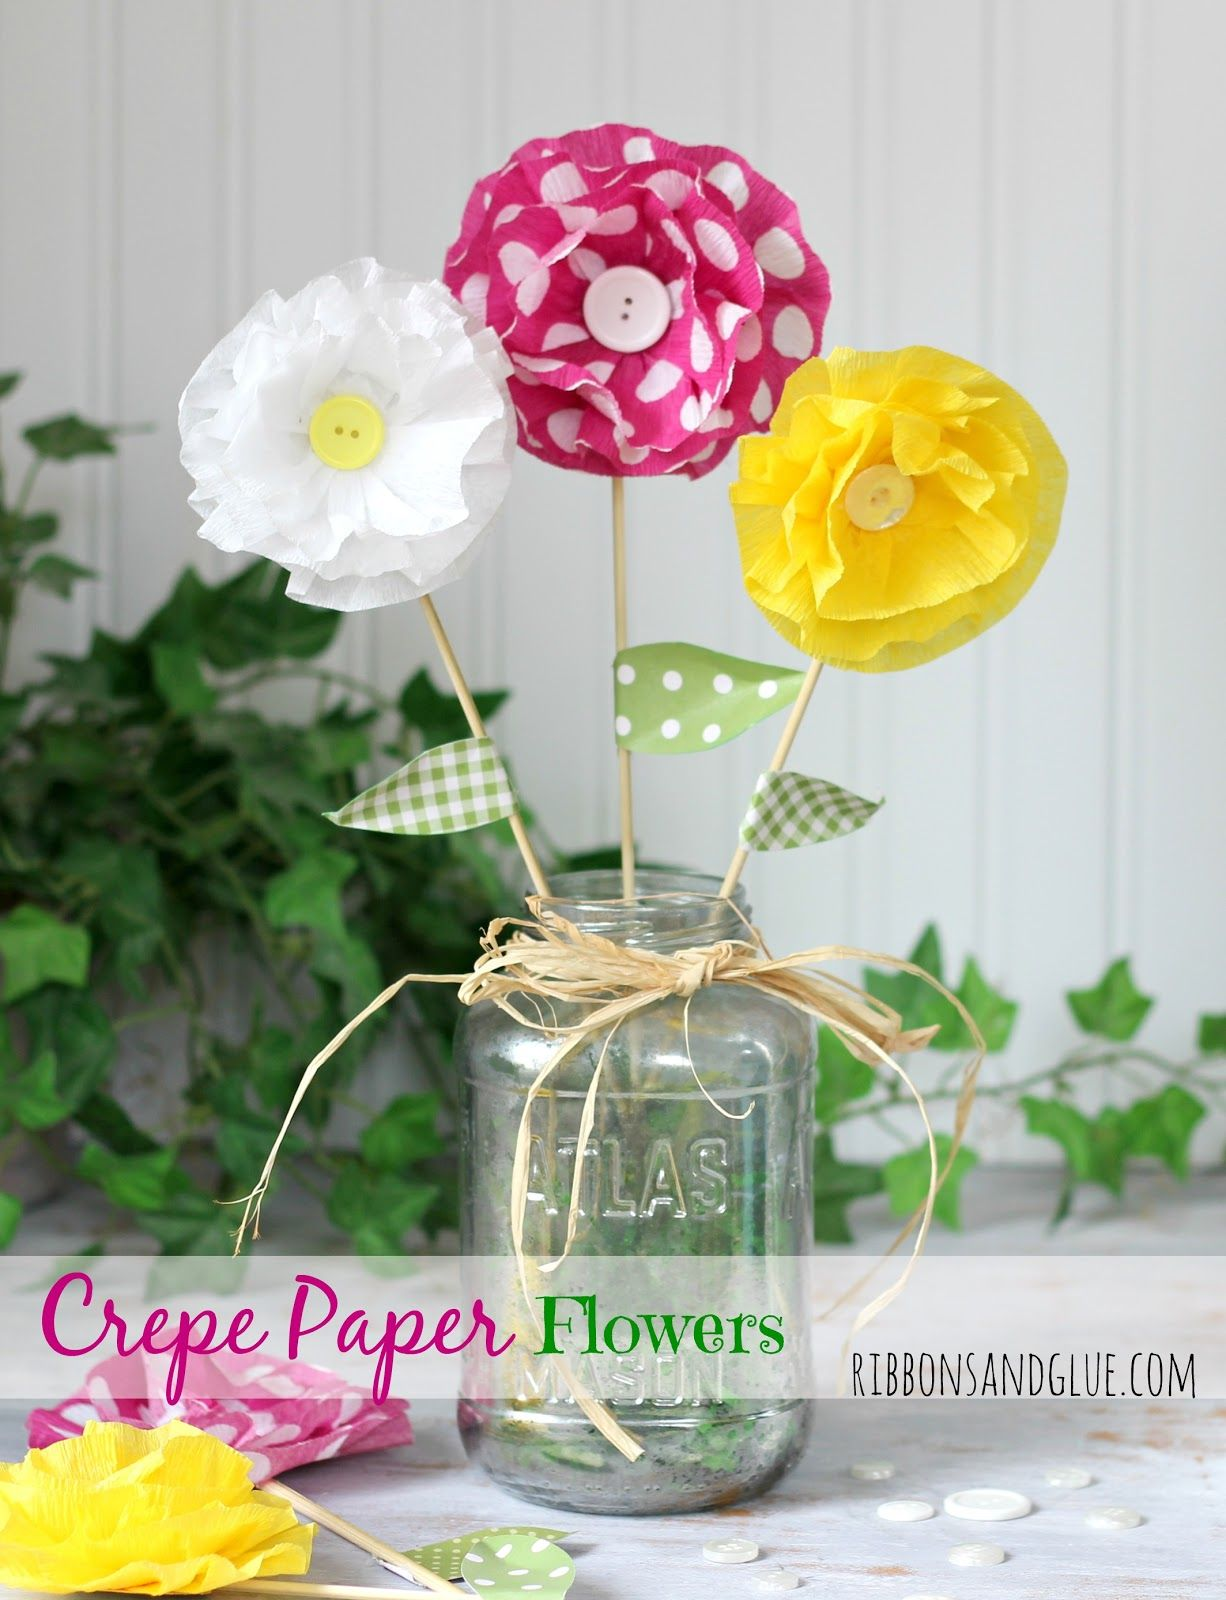 How To Make Crepe Paper Flowers Pinterest Crepe Paper Flowers